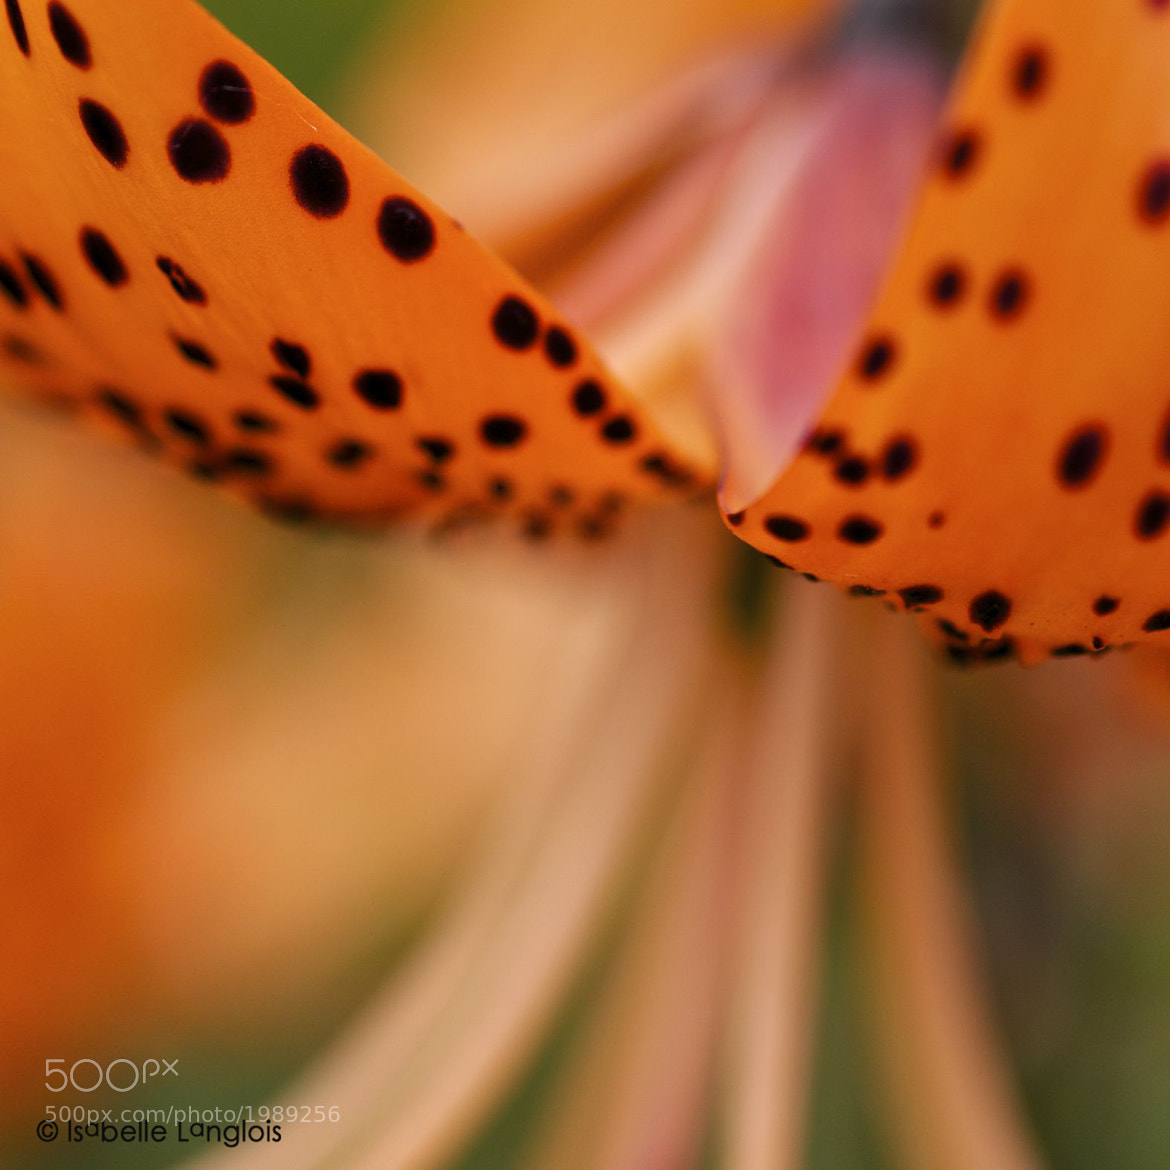 Photograph Polkadots by Isabelle Langlois on 500px